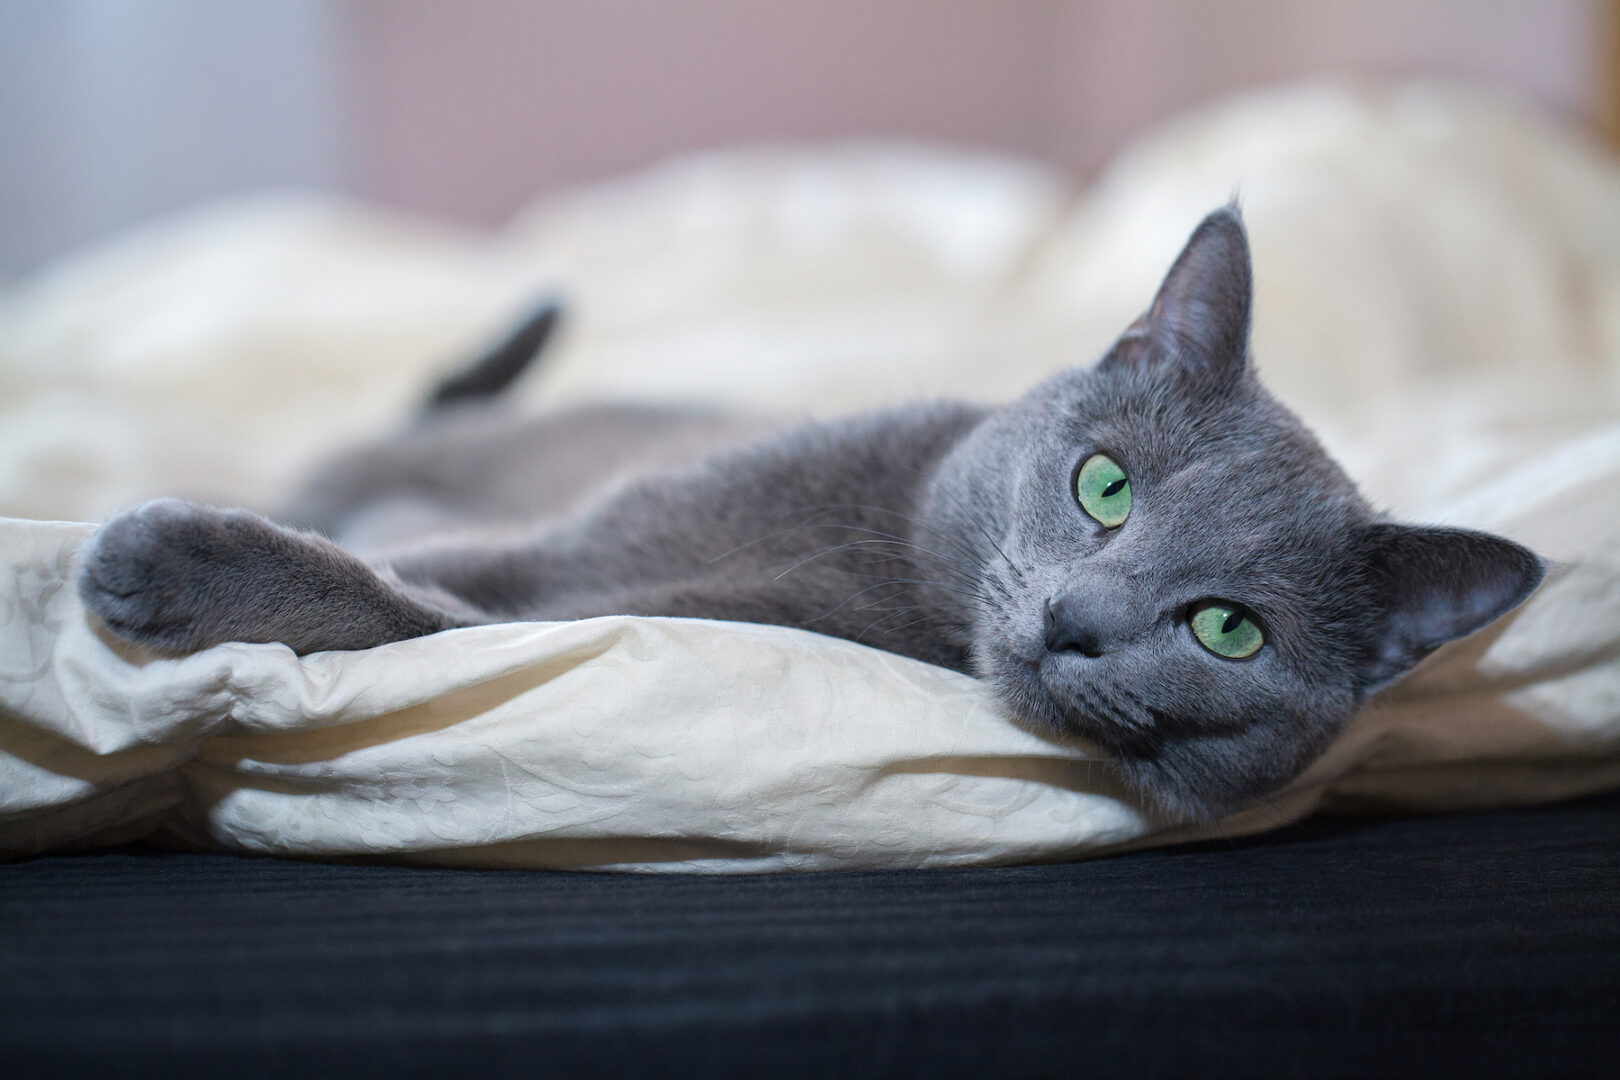 The Russian blue cat is one of the top non-shedding cat breeds